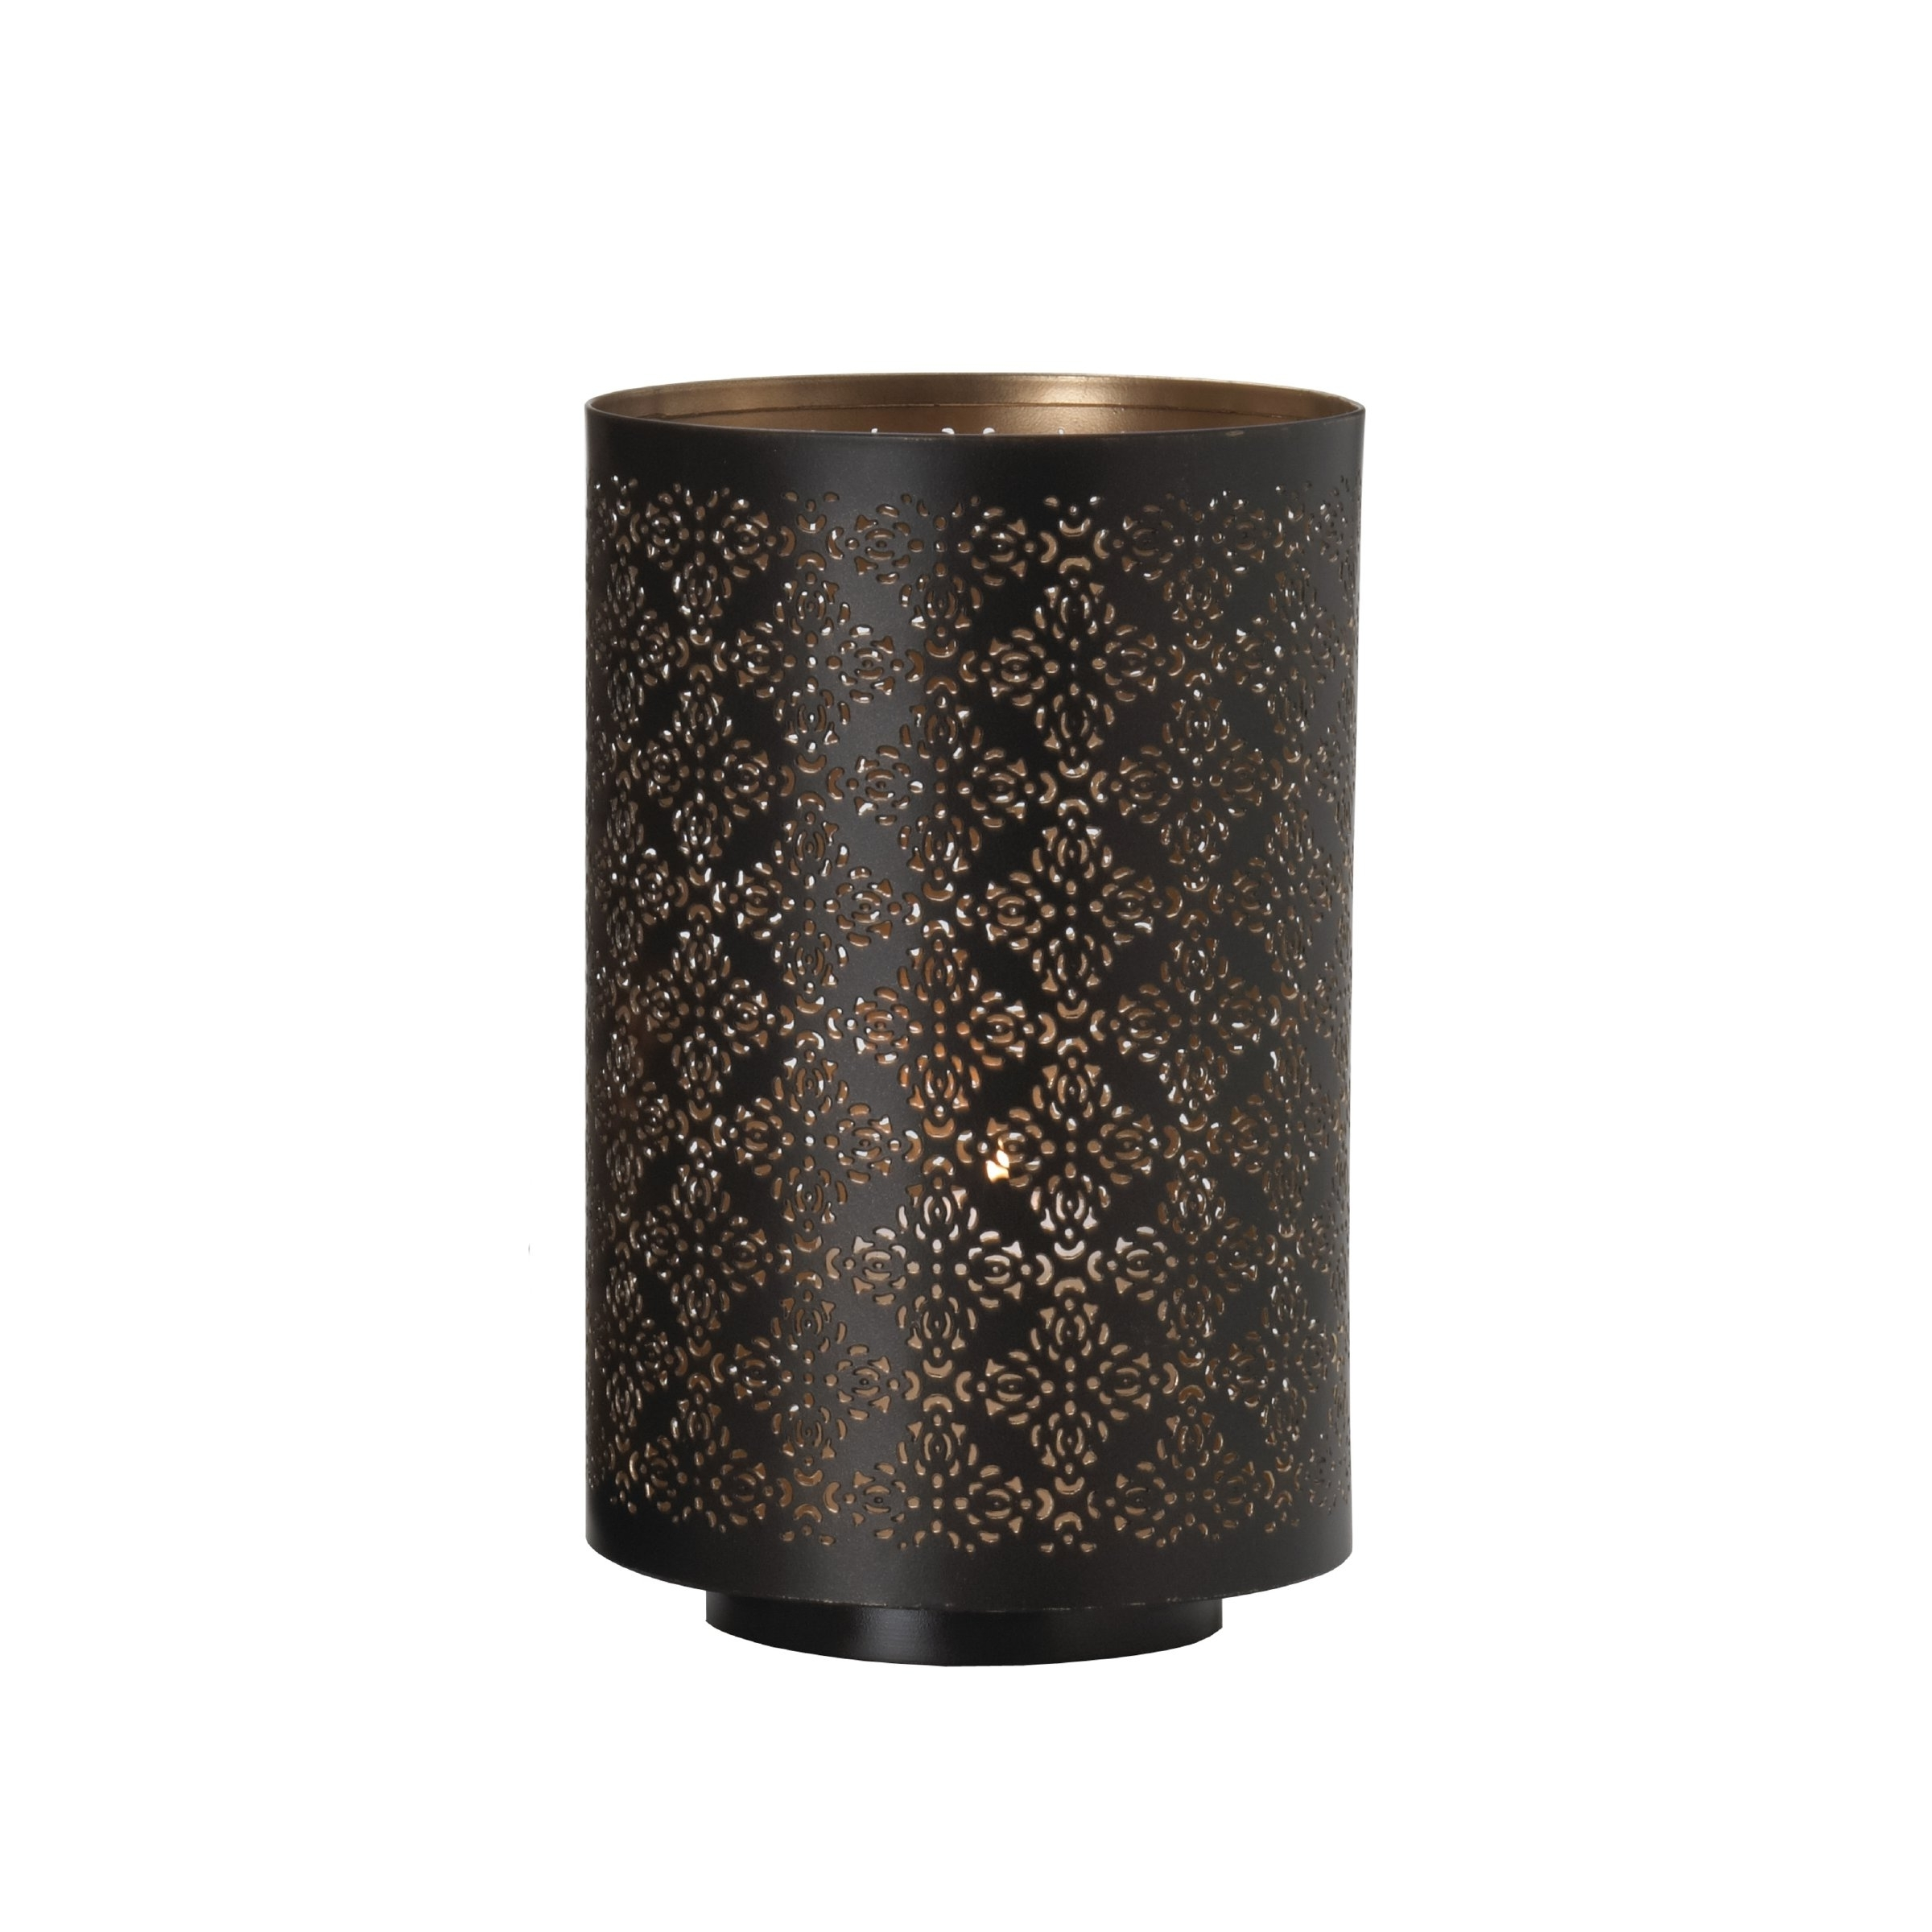 Wayfair Intended For Newest Outdoor Lanterns And Votives (View 14 of 20)